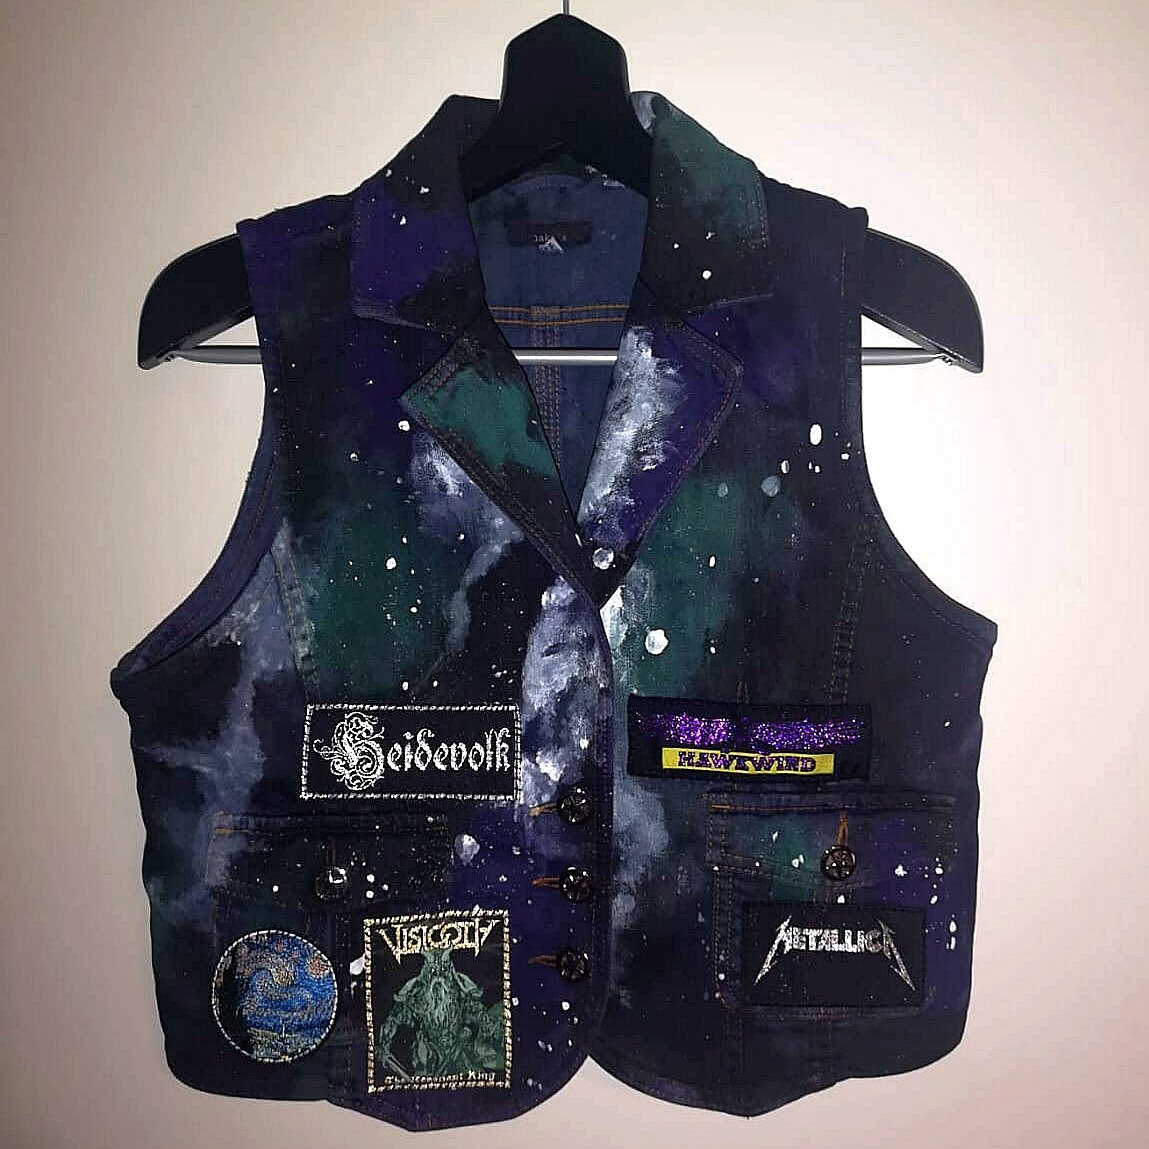 And lo, after approximately a year ago, I finally finished this project. Much trial and error went into this, but my space vest is finally done!  #battlevest #metal #heavymetal #kutte #alternativefashion #gloryhammerpic.twitter.com/OIBXEabDID